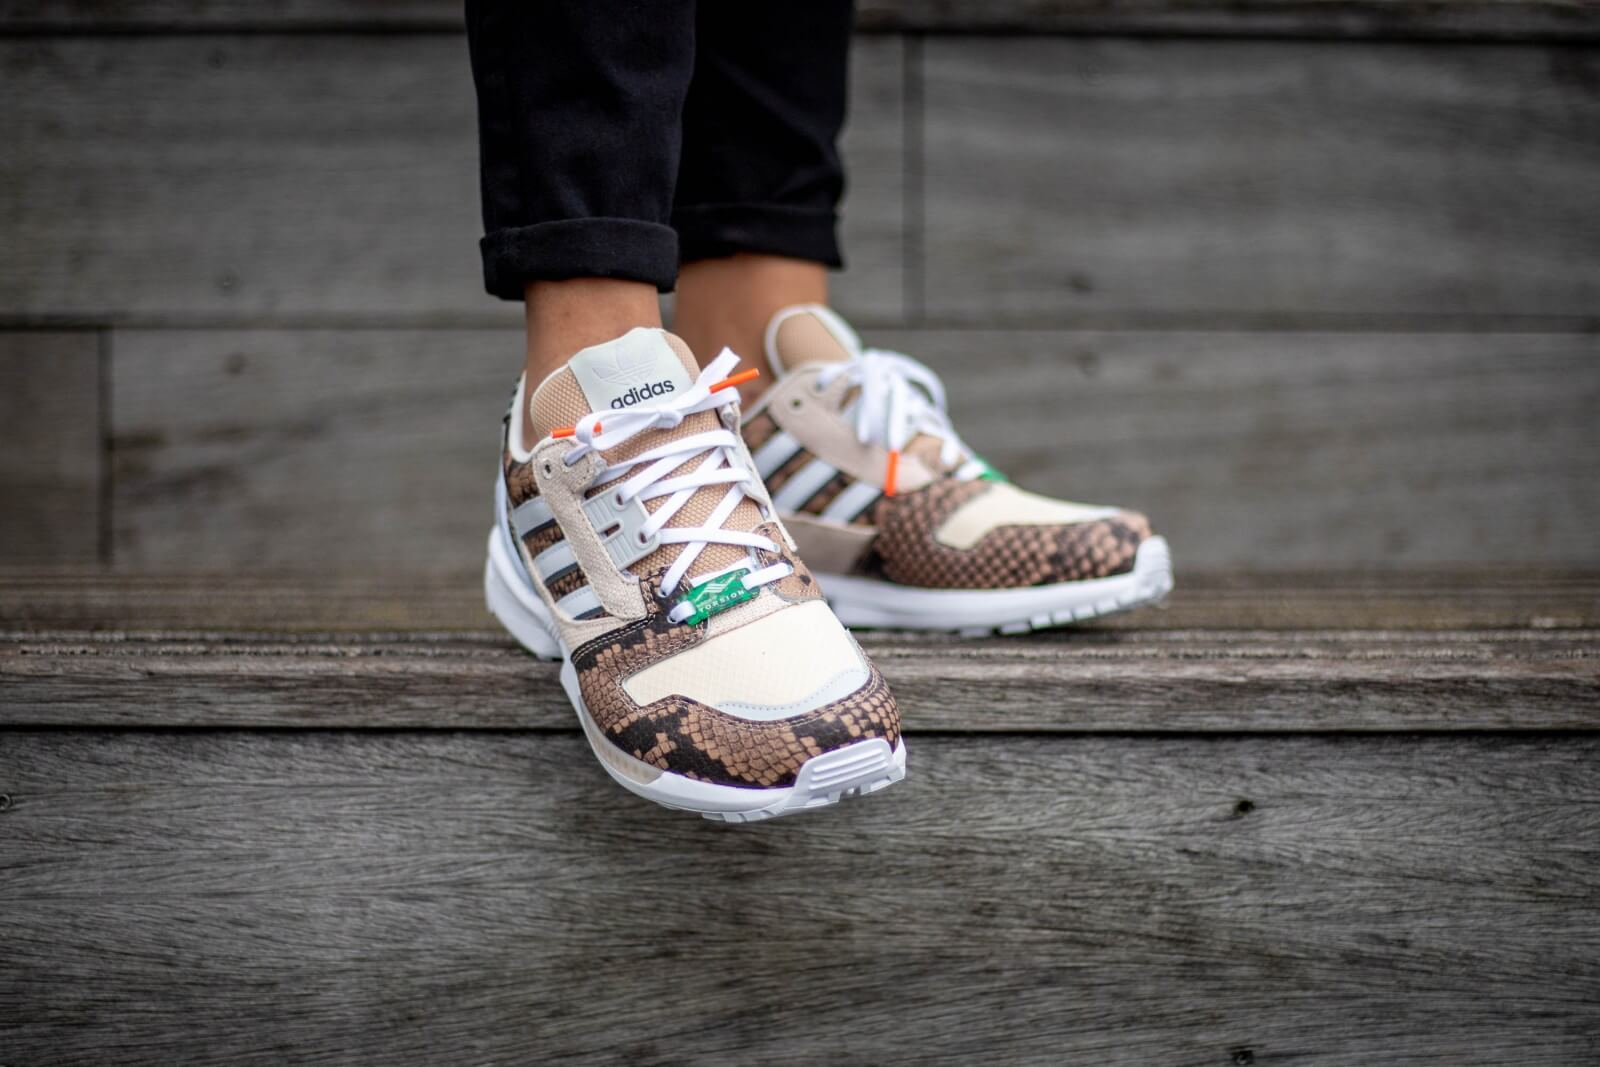 Adidas ZX 8000 Lethal Nights Pack St Pale Nude/Chalk White